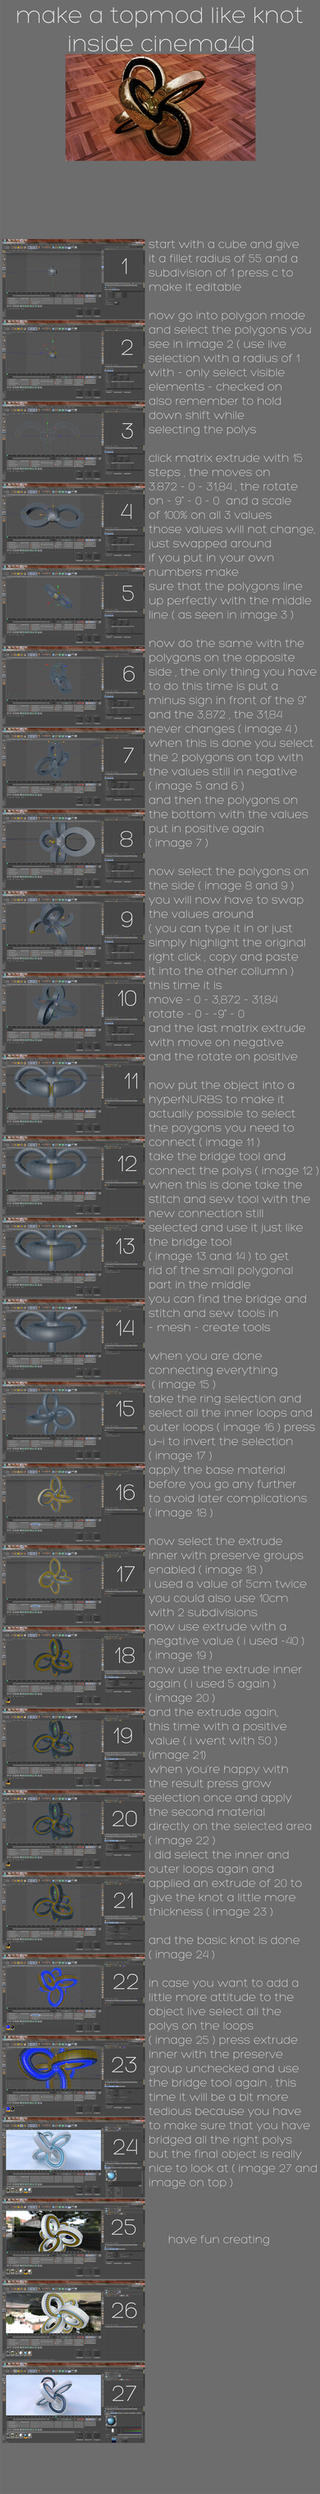 topmod like knot tutorial in cinema 4d by xylomon